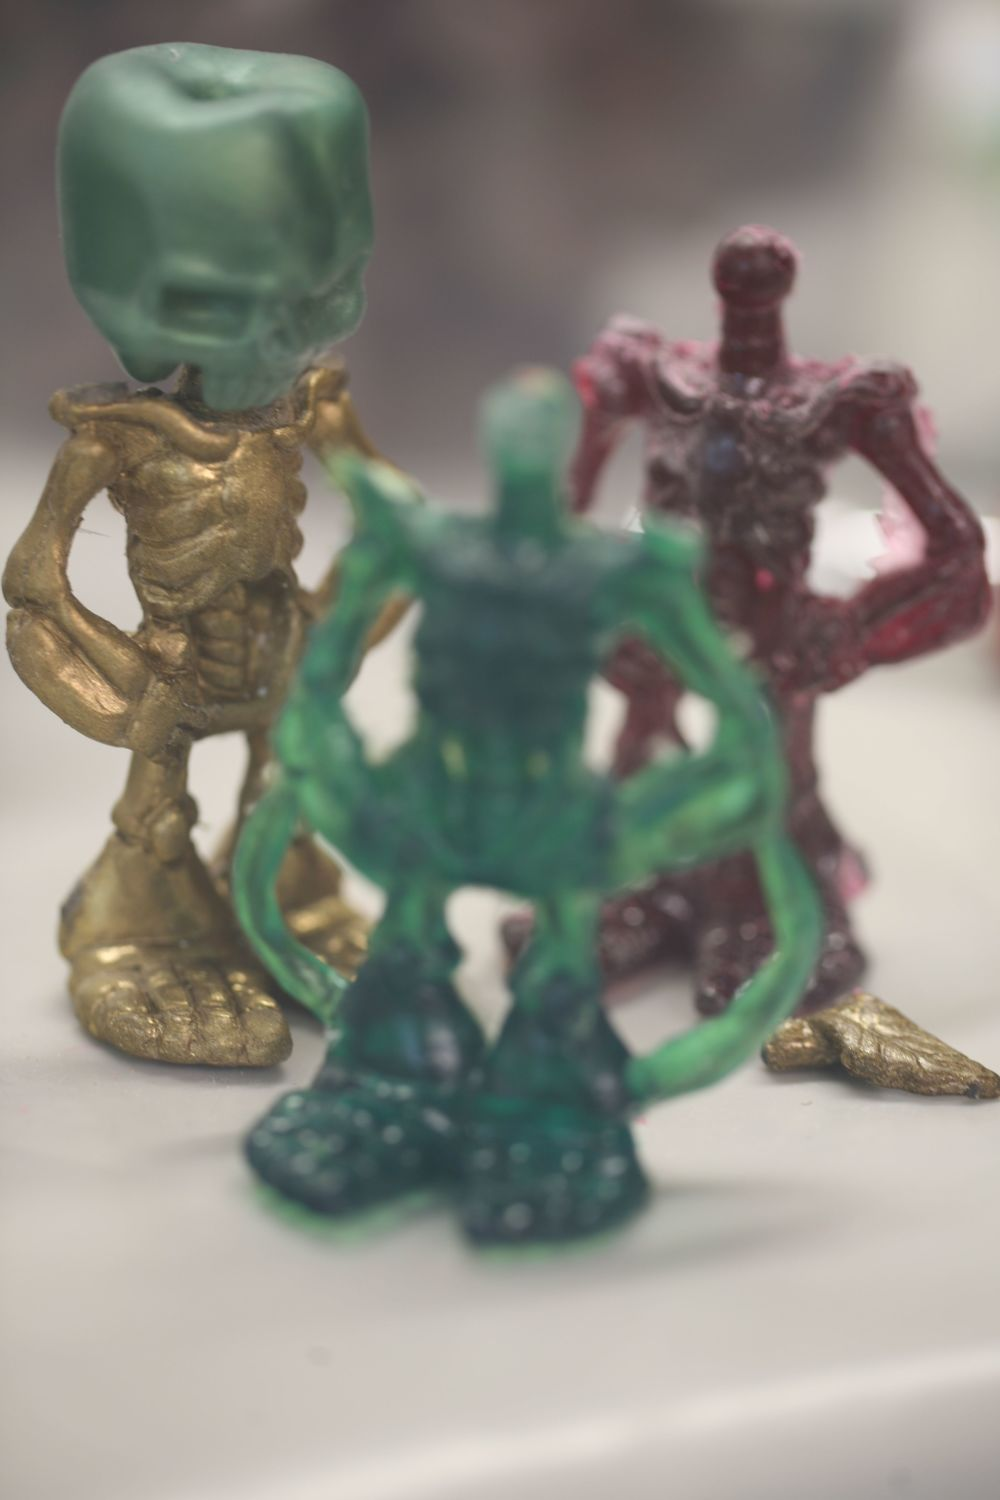 Green& gold figure plus headless bodies.jpg